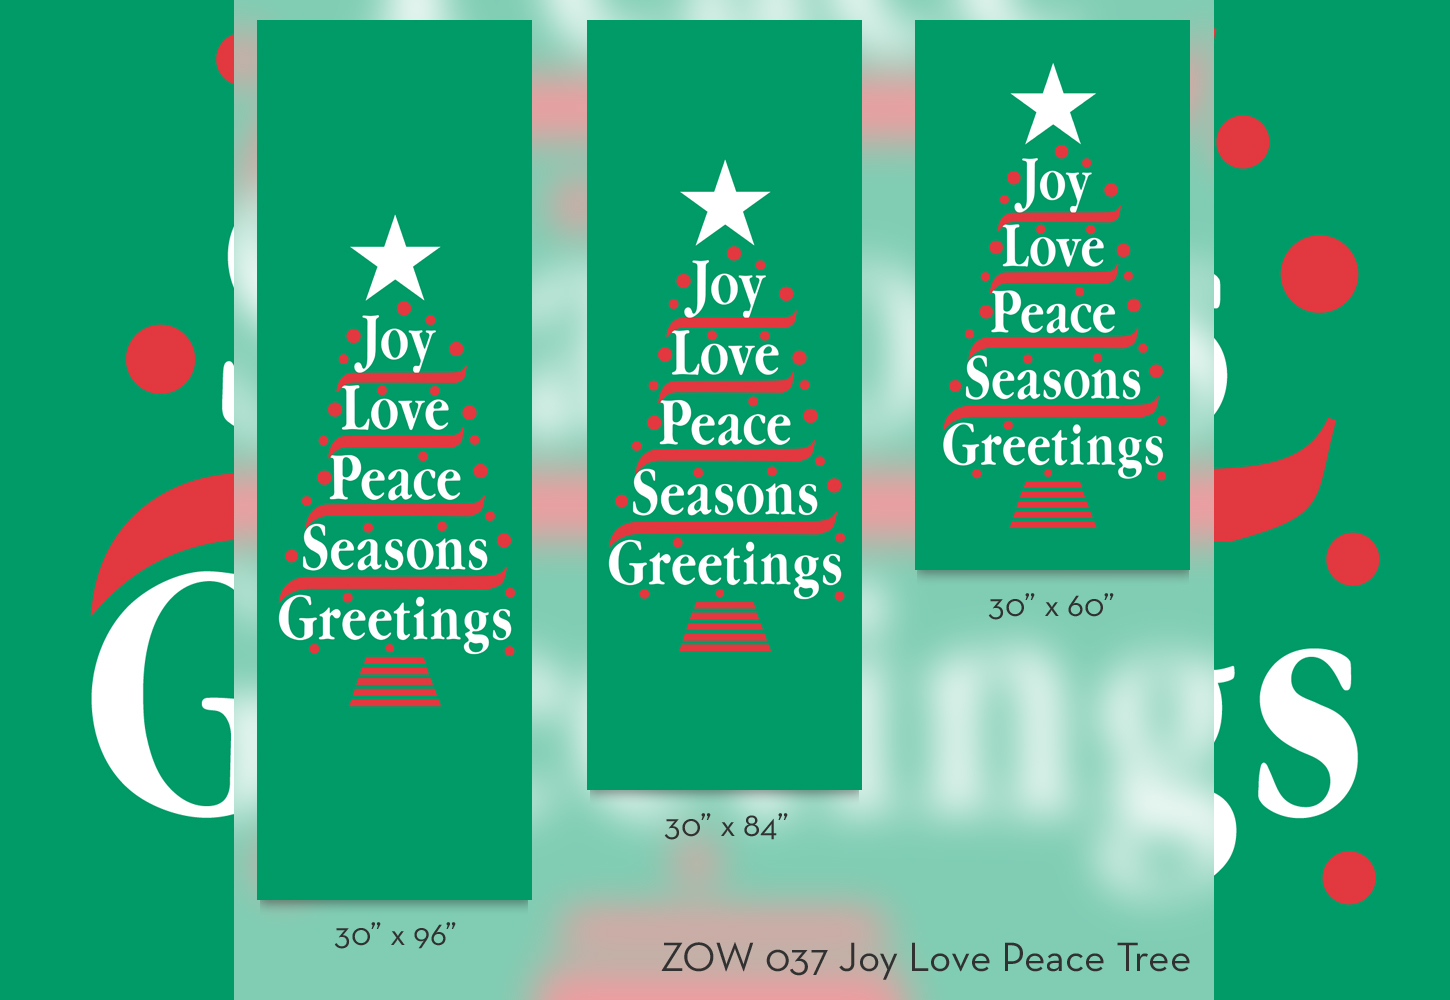 ZOW 037 Joy Love Peace Tree